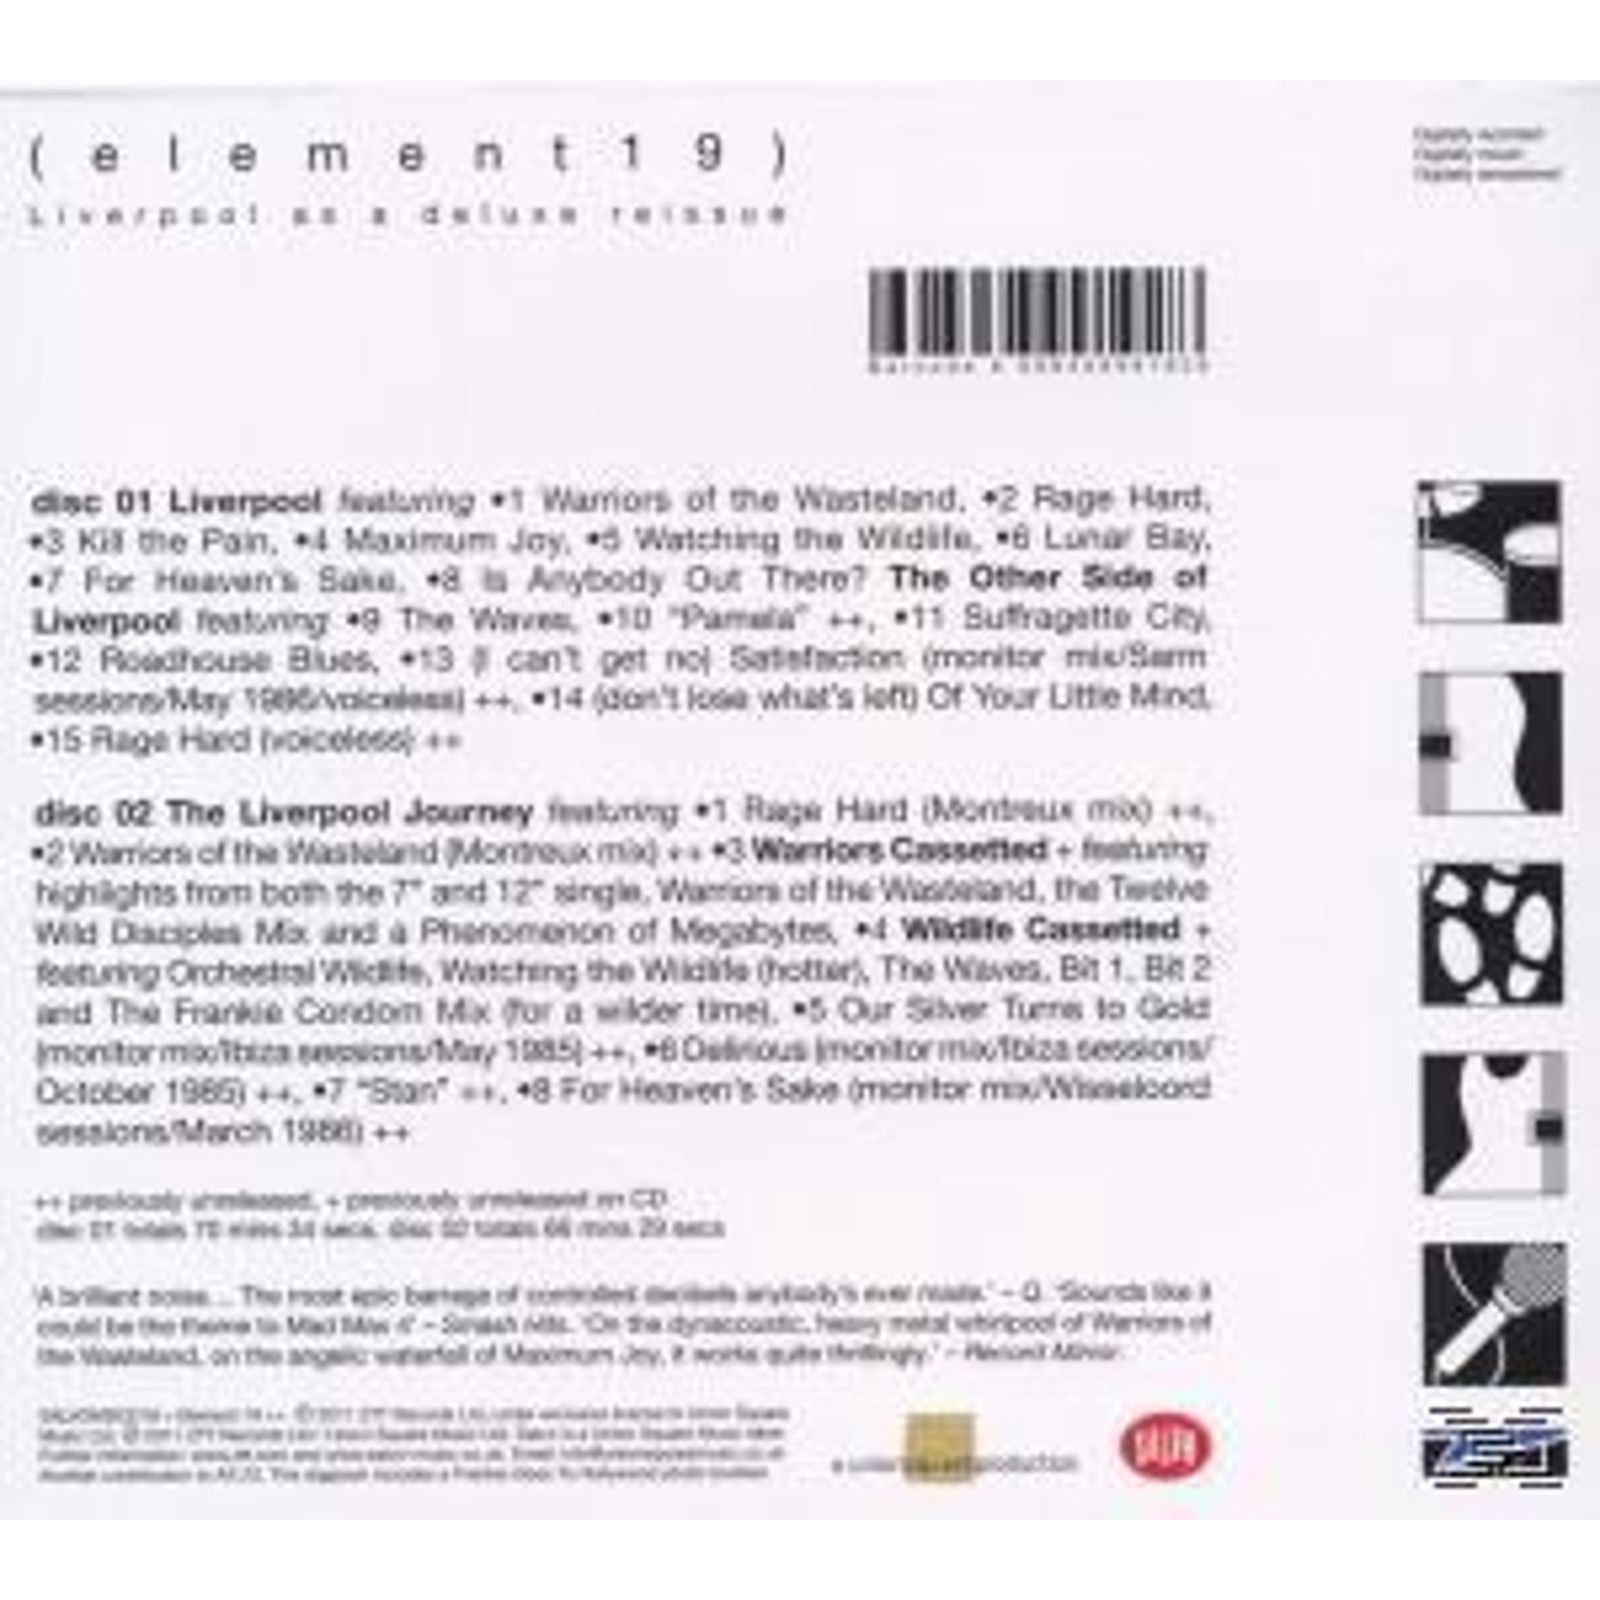 Frankie Goes To Hollywood - Liverpool (Deluxe 2cd Edition) CD], [^0698458991928 | eBay